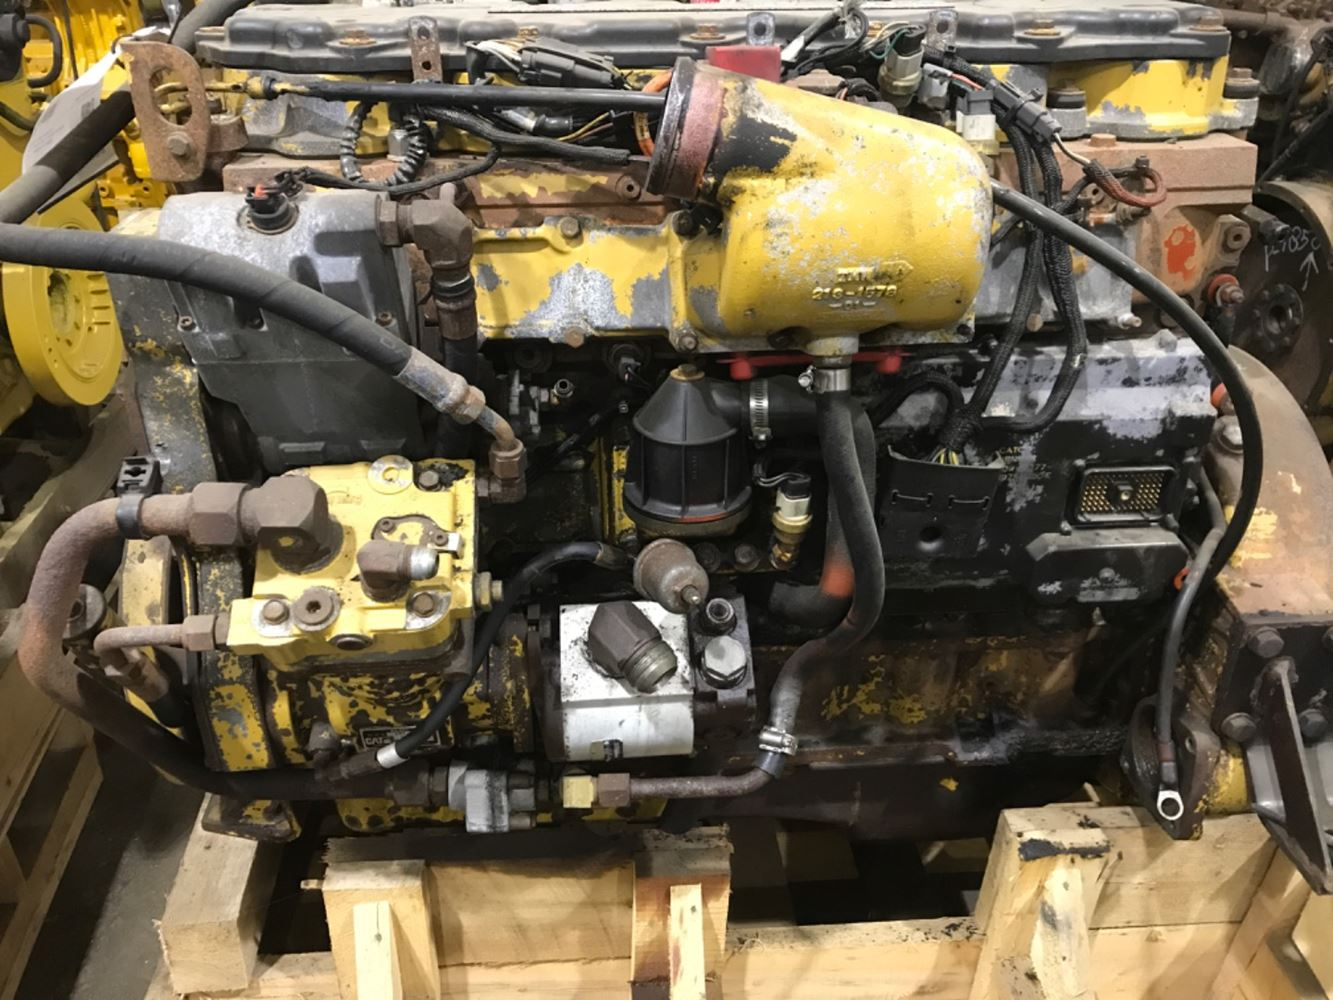 CATERPILLAR C7 ENGINE ASSEMBLY TRUCK PARTS #679937